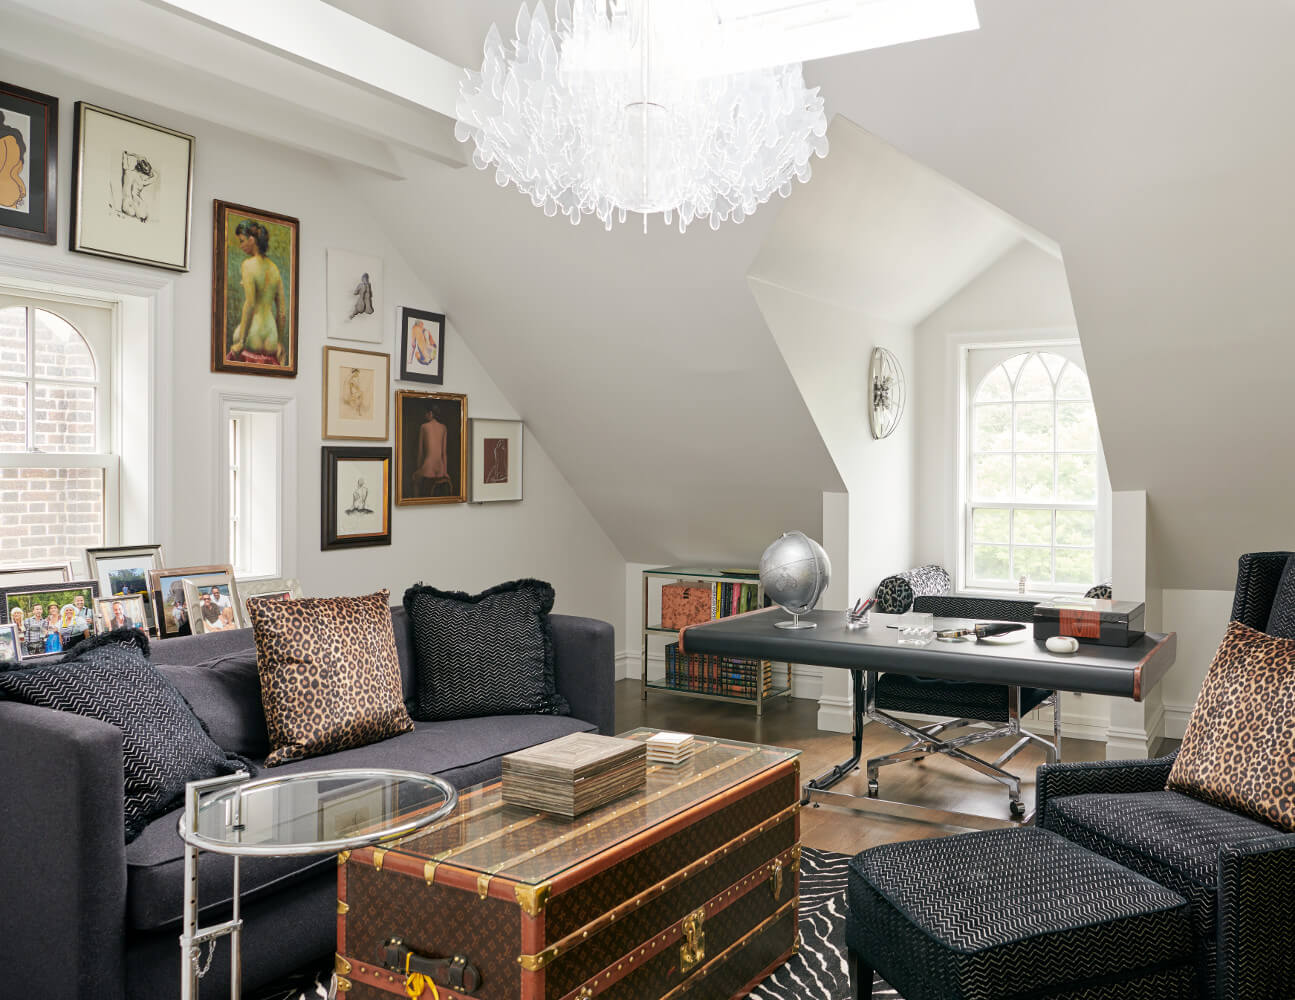 The top floor of this Prospect Park West twin house is a sitting room with a dormered window, exposed beams, and a wall of nude backs.